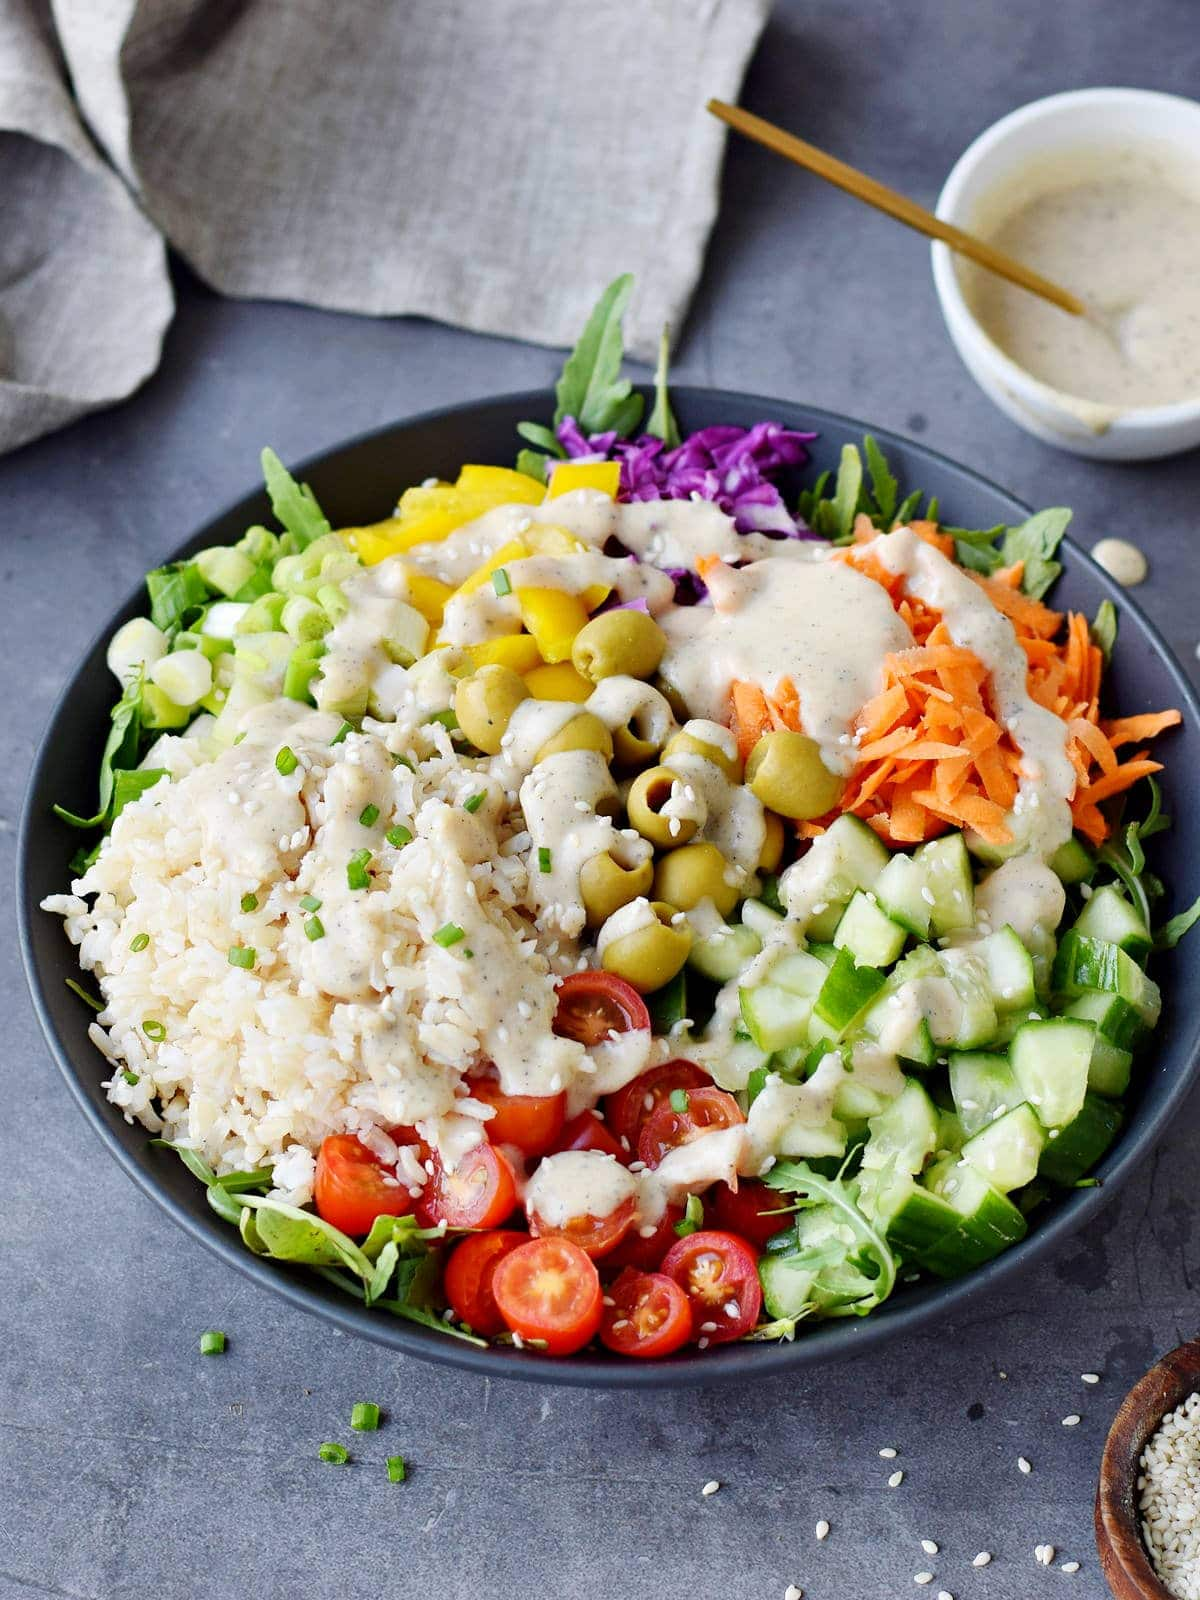 brown rice salad with veggies and creamy dressing